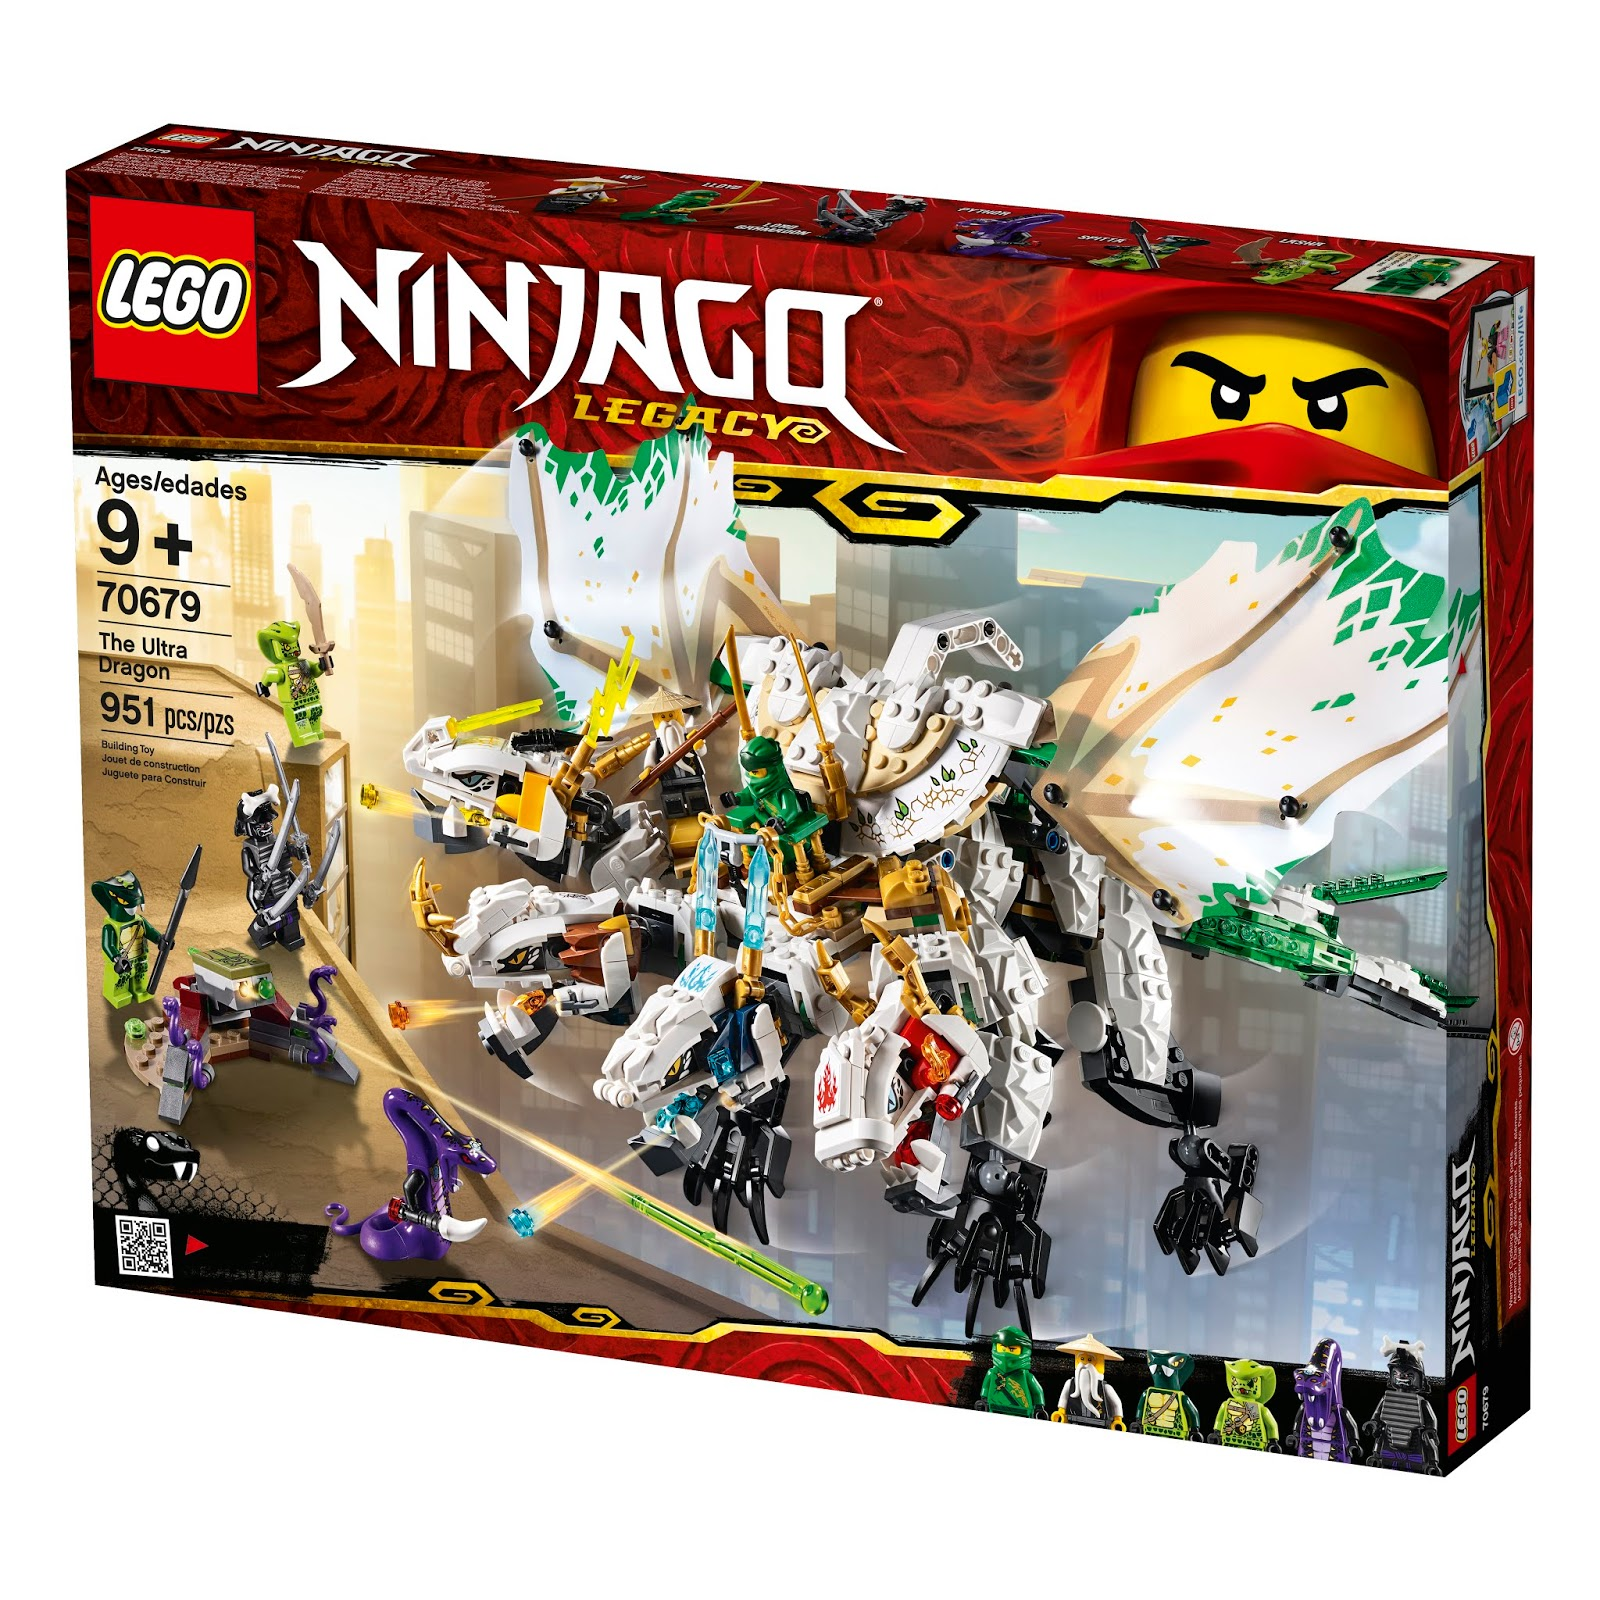 more lego ninjago legacy 2019 set images the brick fan